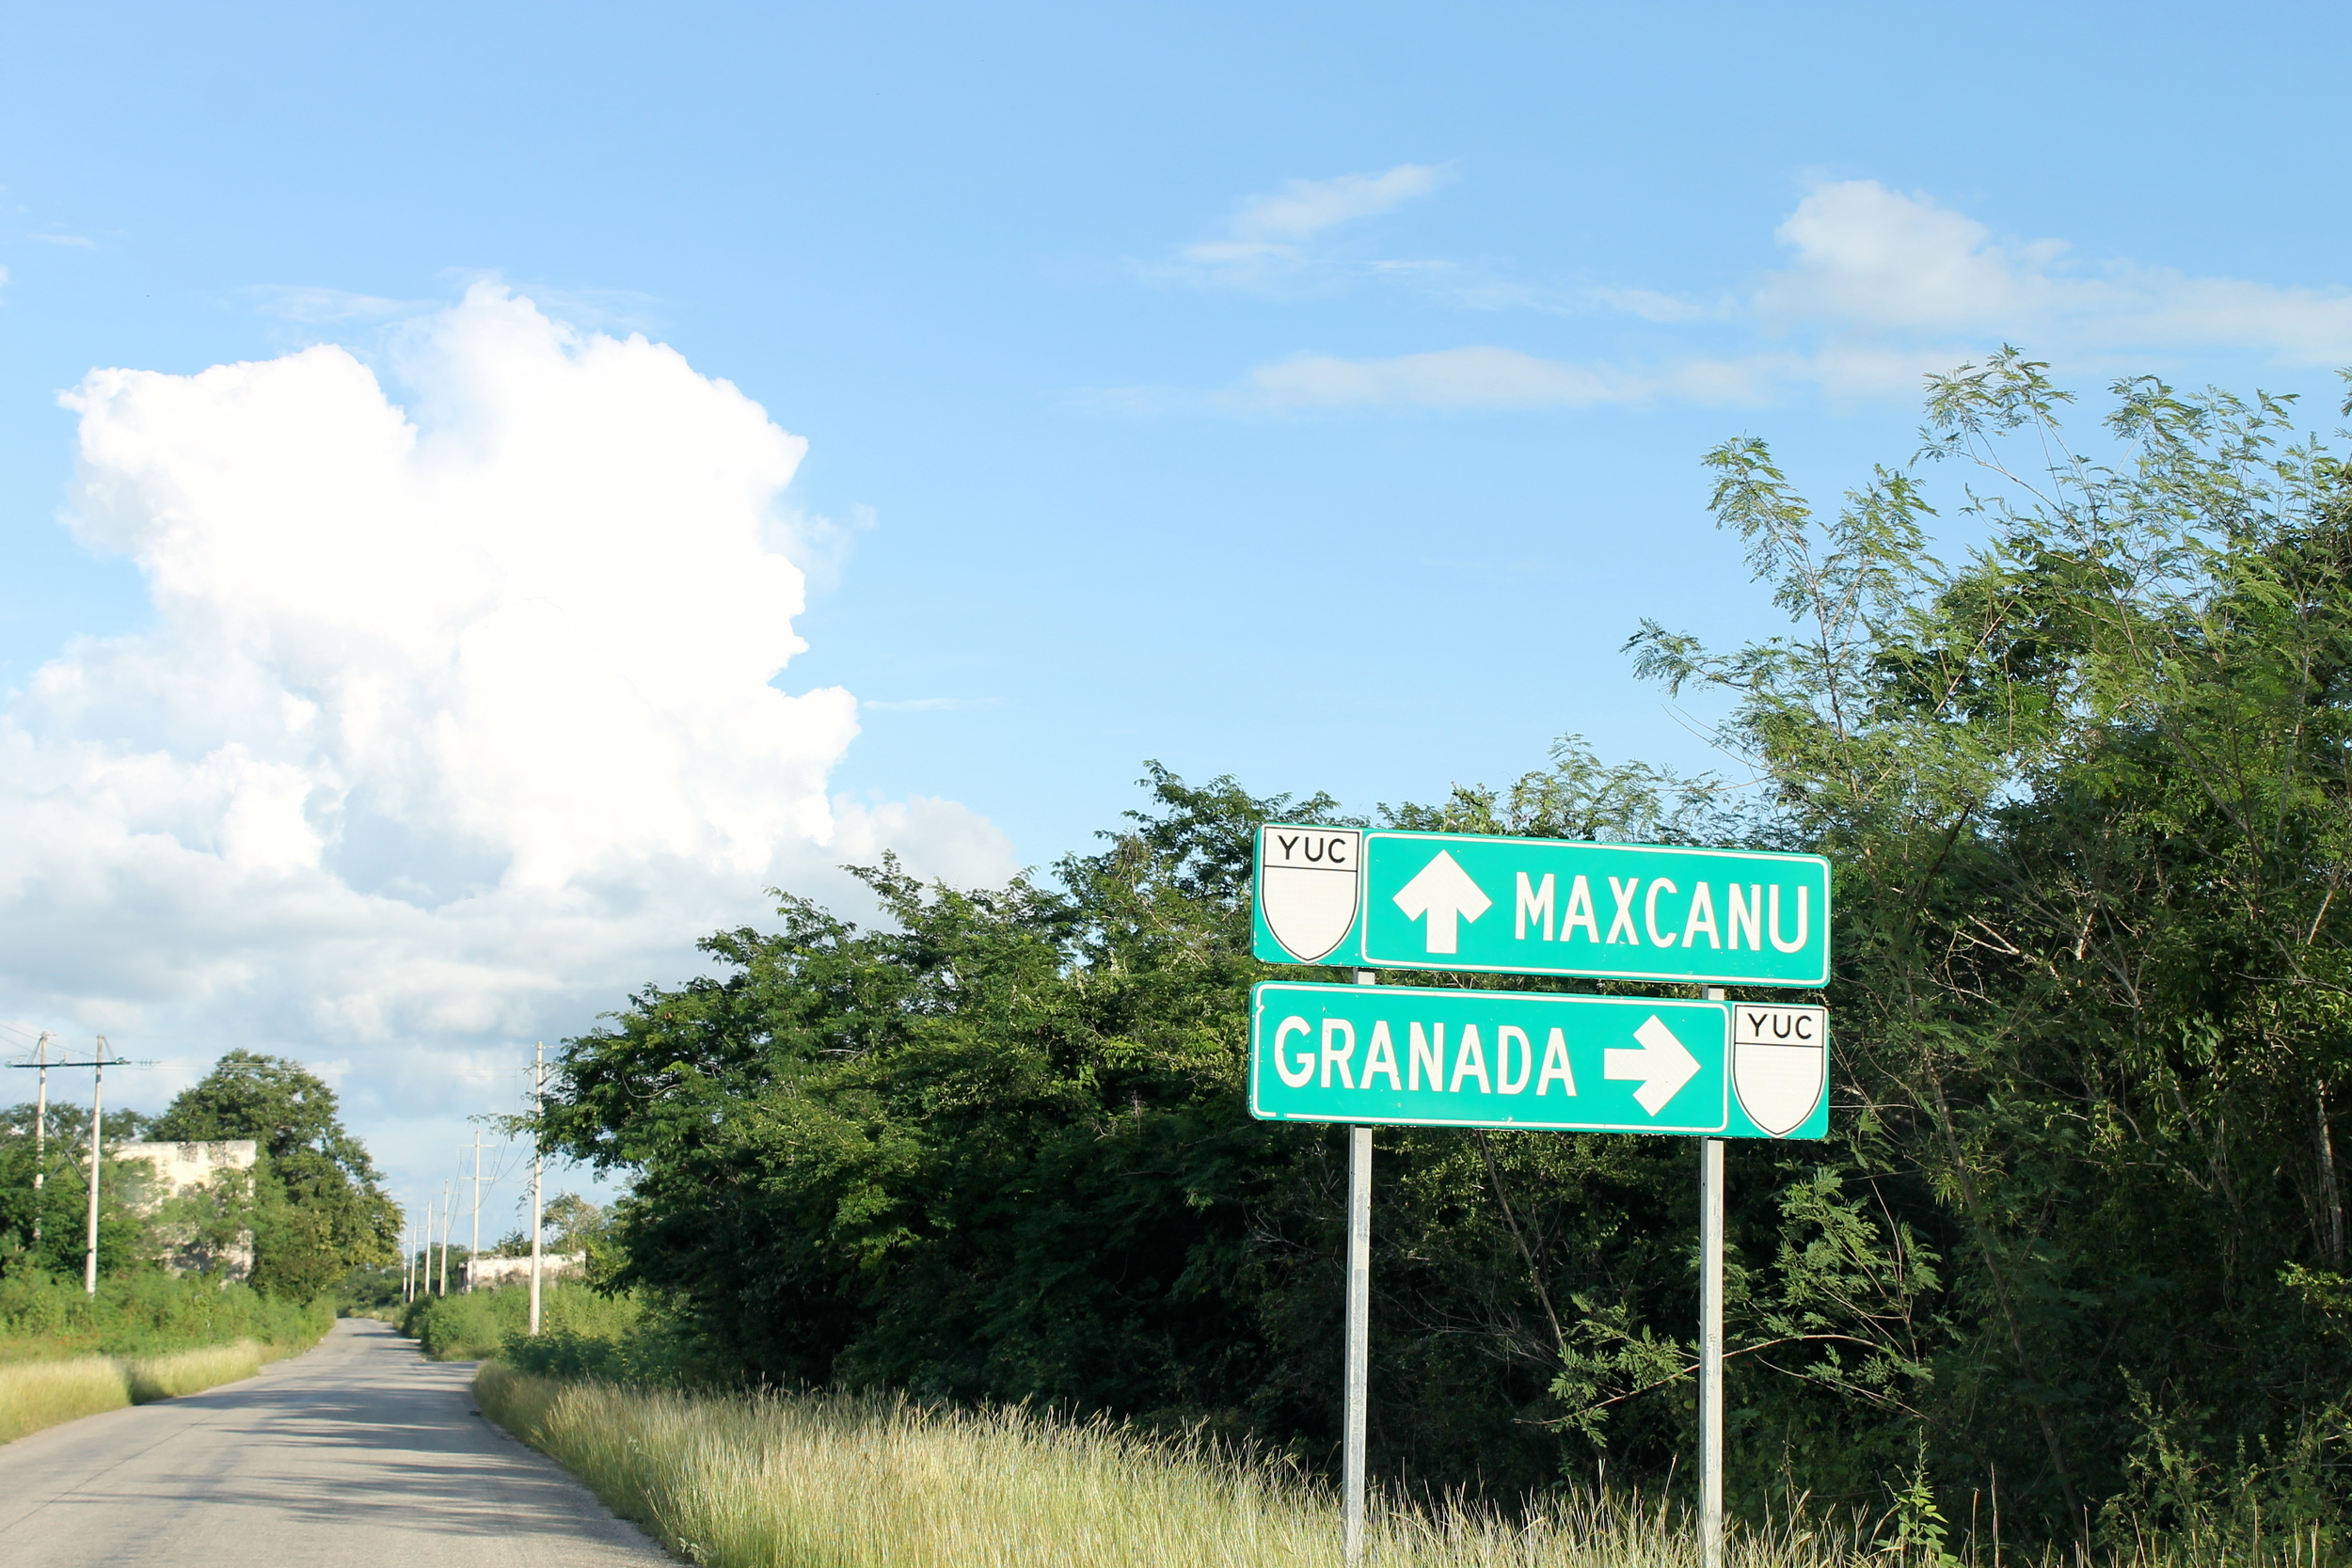 The road from Santa Rosa to Maxcanu. Granada? Really?